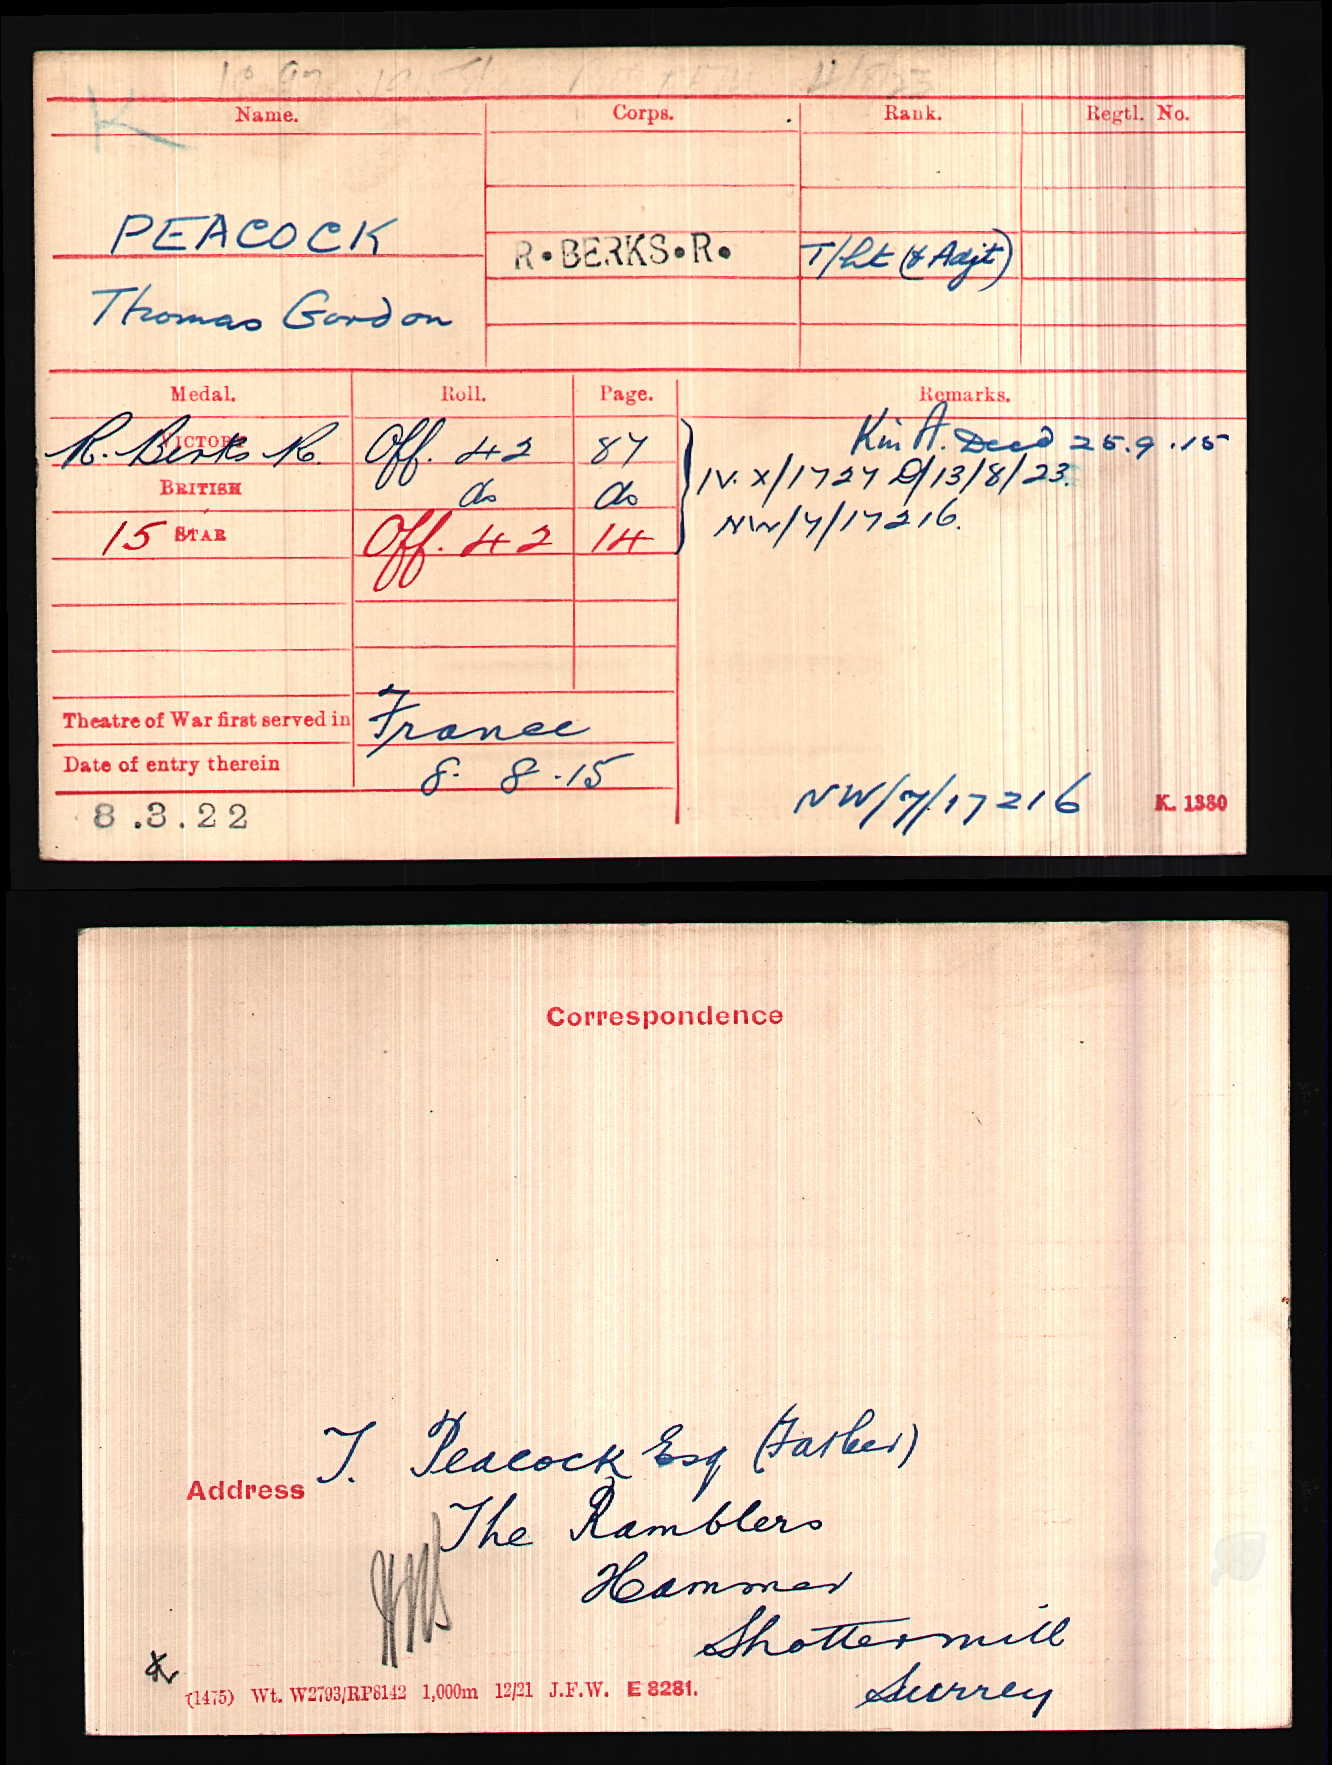 Thomas Gordon Peacock medal card.jpg